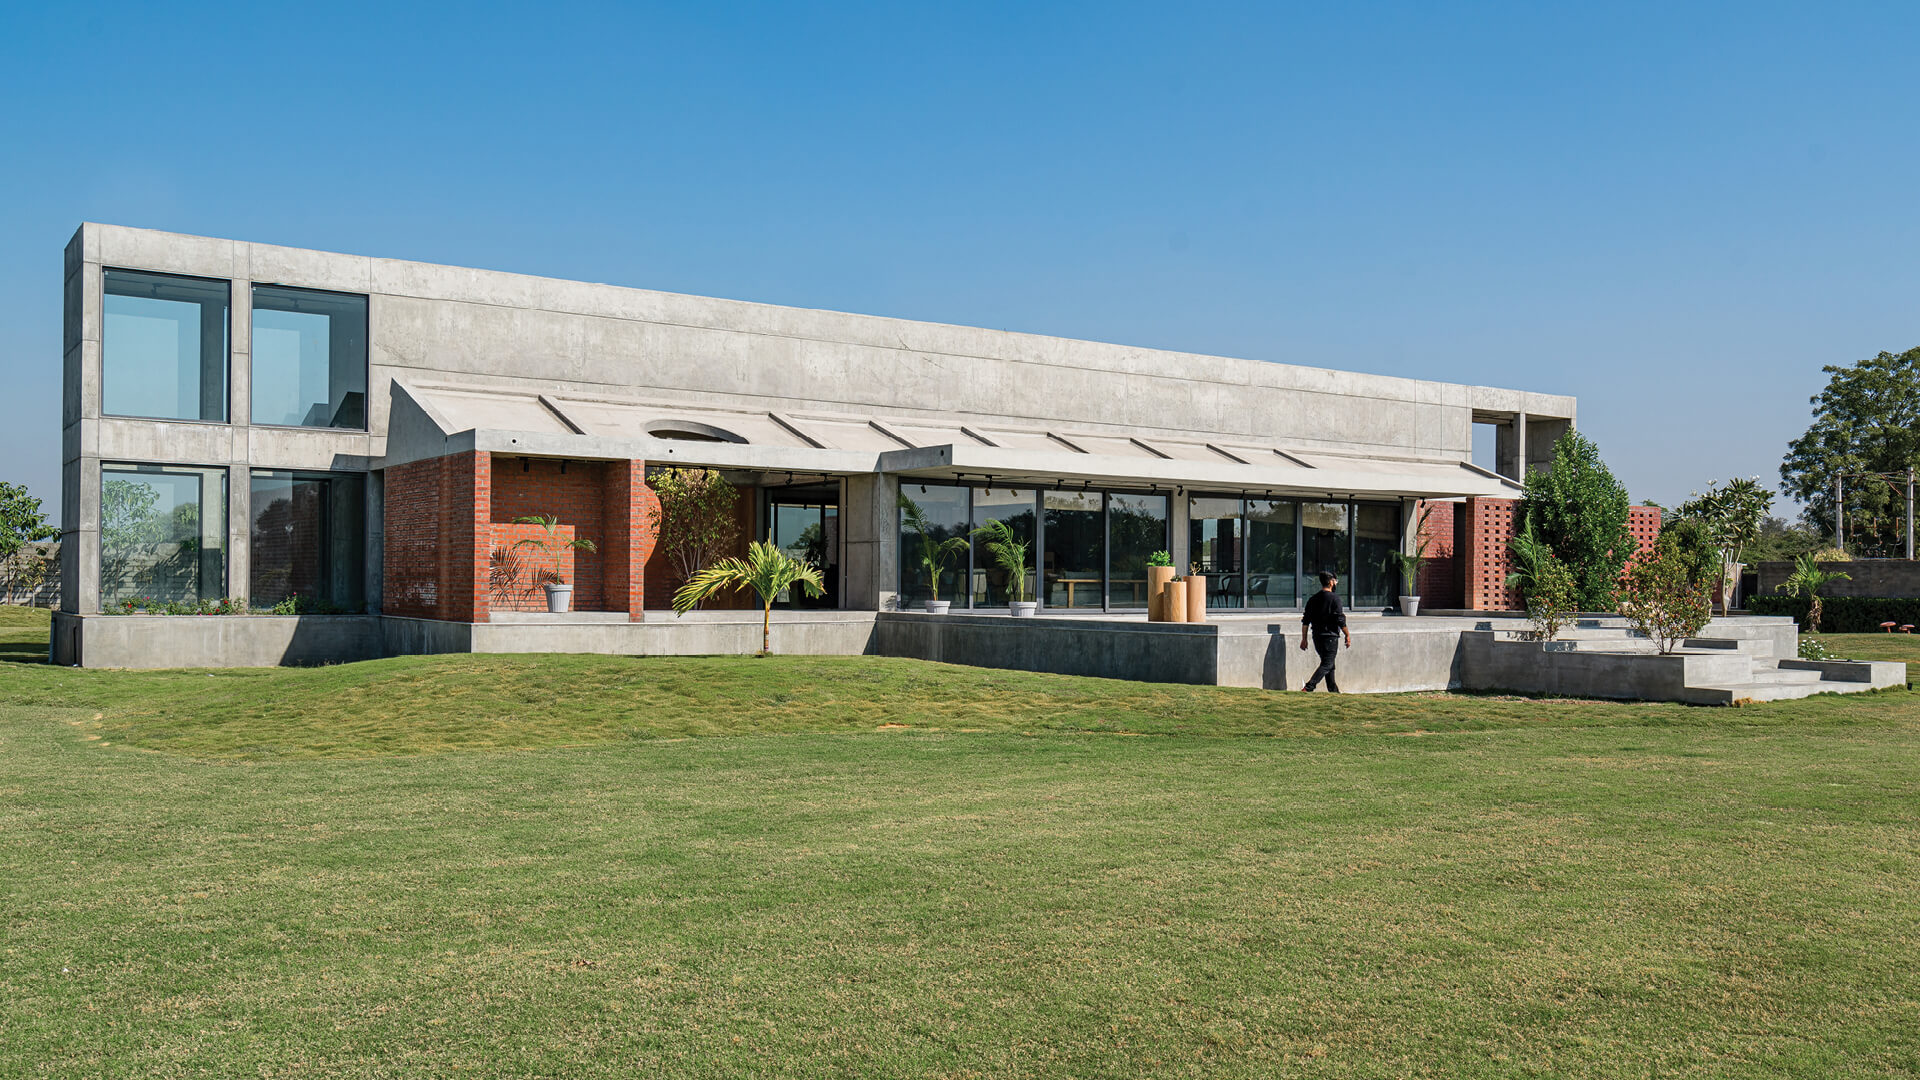 Two Bay House by MISA Architects in Chekhla, India | Two Bay House by MISA Architects | STIRworld